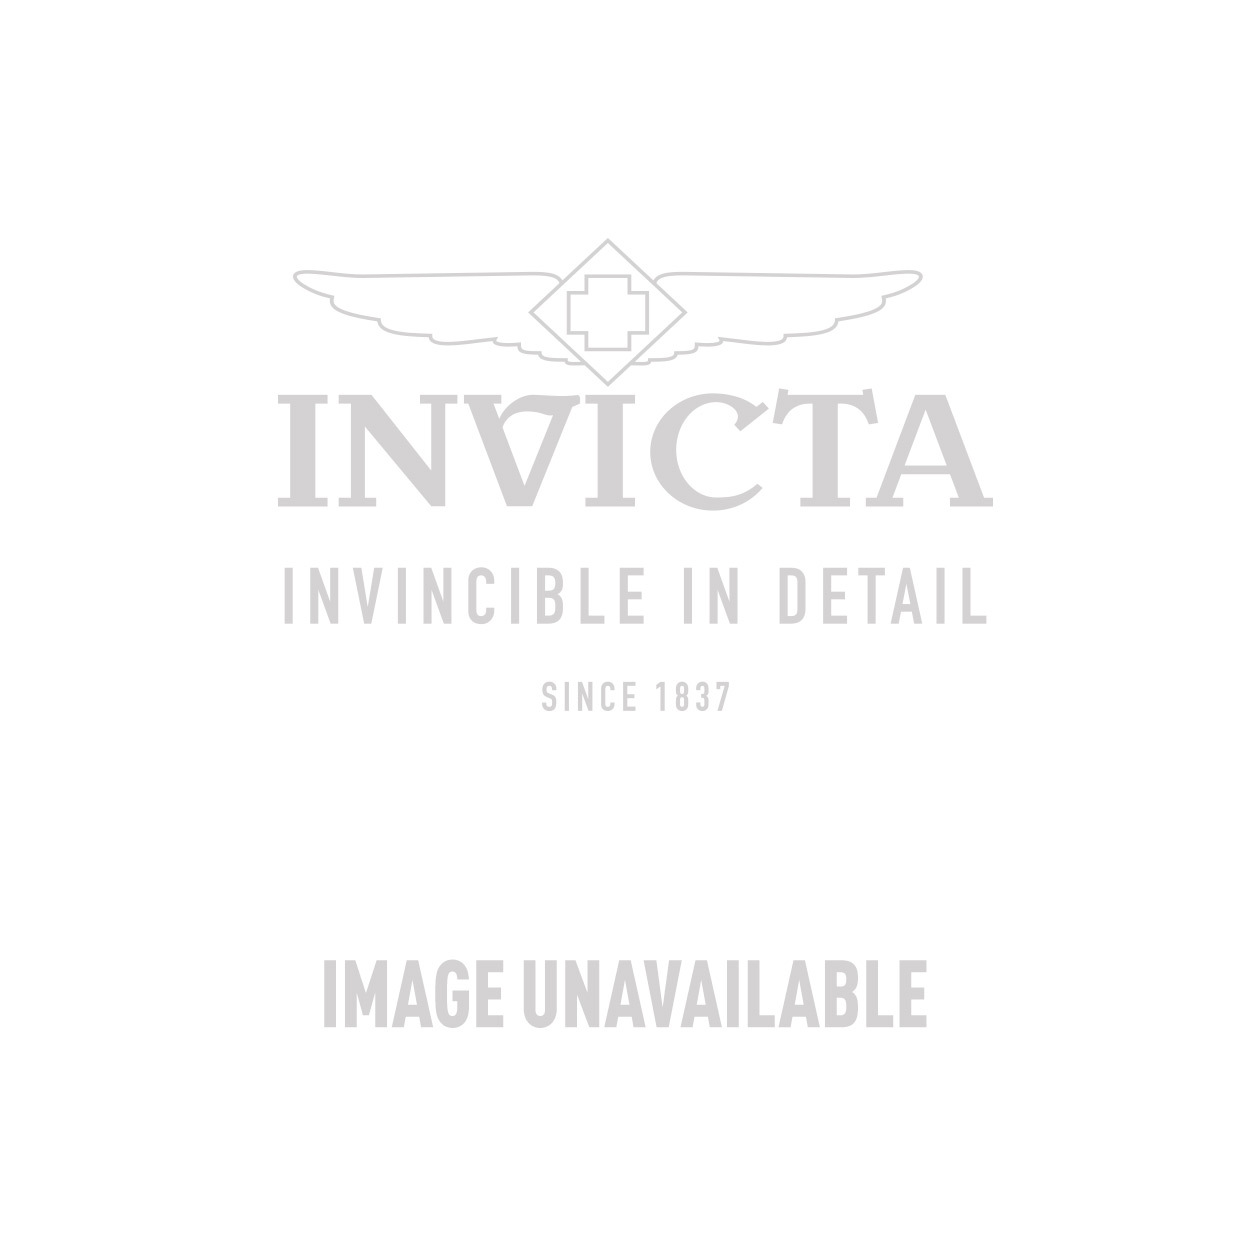 Invicta Angel Swiss Movement Quartz Watch - Stainless Steel case Stainless Steel band - Model 14320